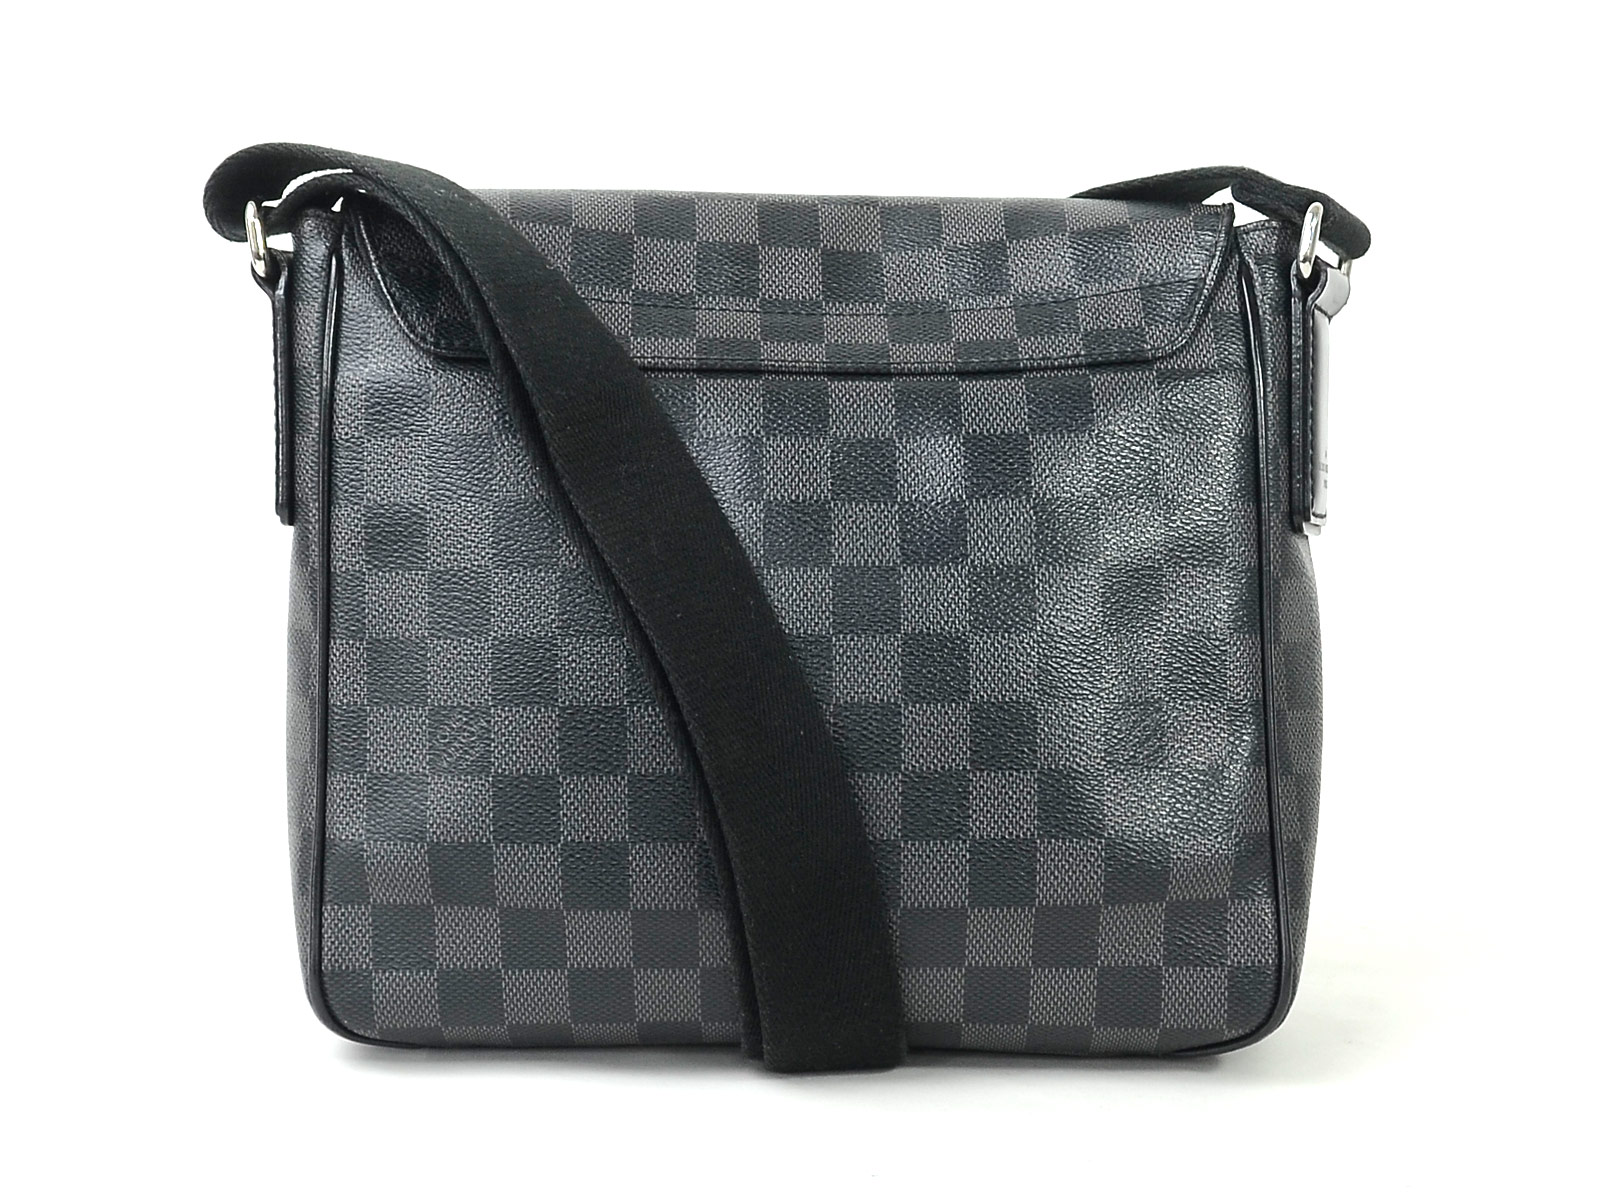 9b35e871b82a Auth Louis Vuitton Damier Graphite District PM Shoulder Bag N41260 ...